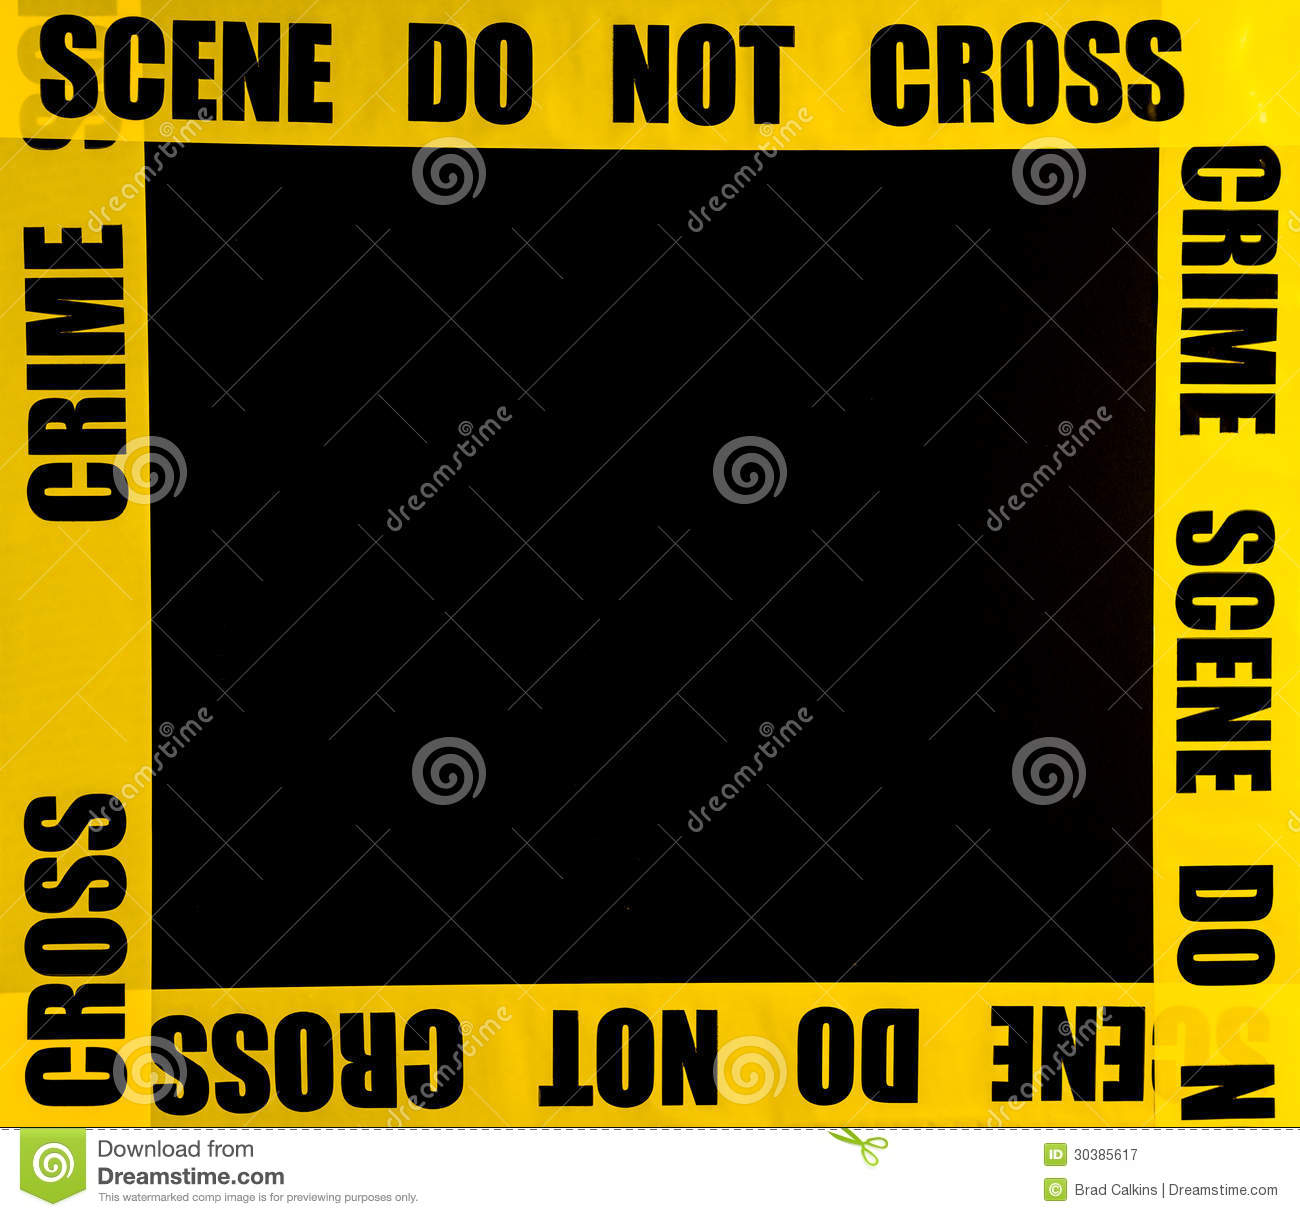 612 Crime Scene Frame Photos Free Royalty Free Stock Photos From Dreamstime